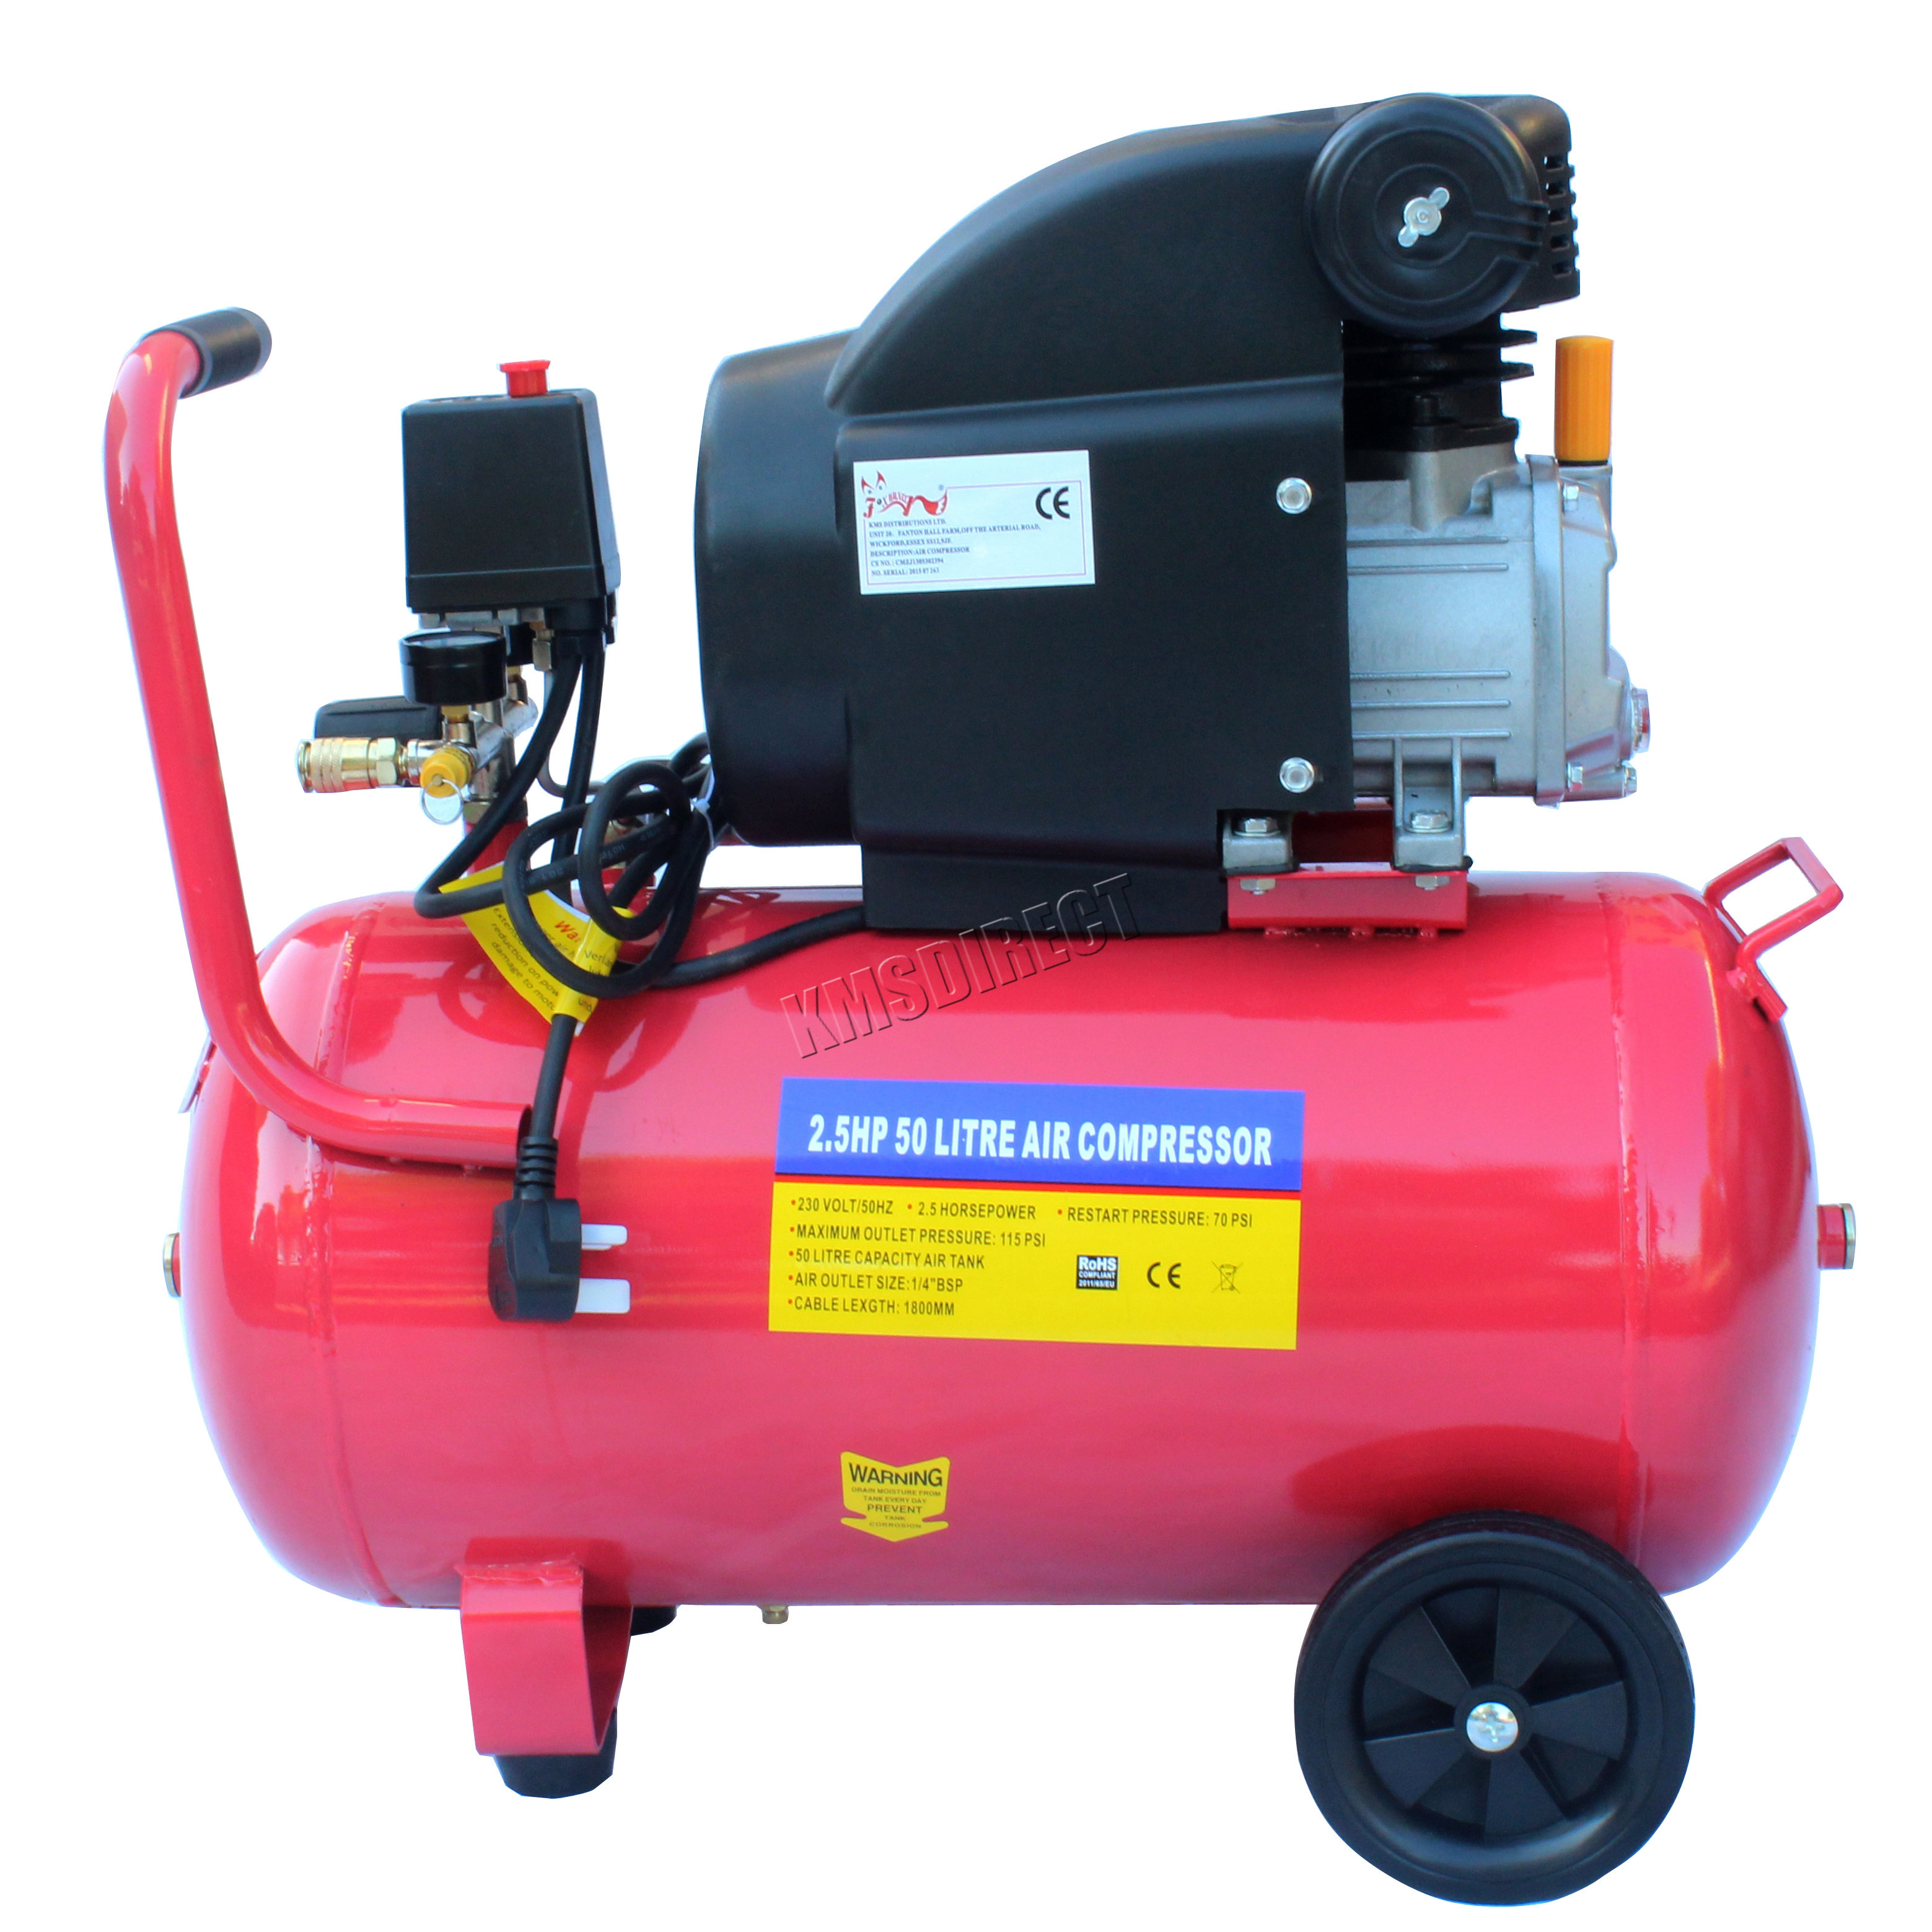 Foxhunter 50ltr 2 5hp electric air compressor 50 ltr 2 5 for 5 hp electric motor for air compressor